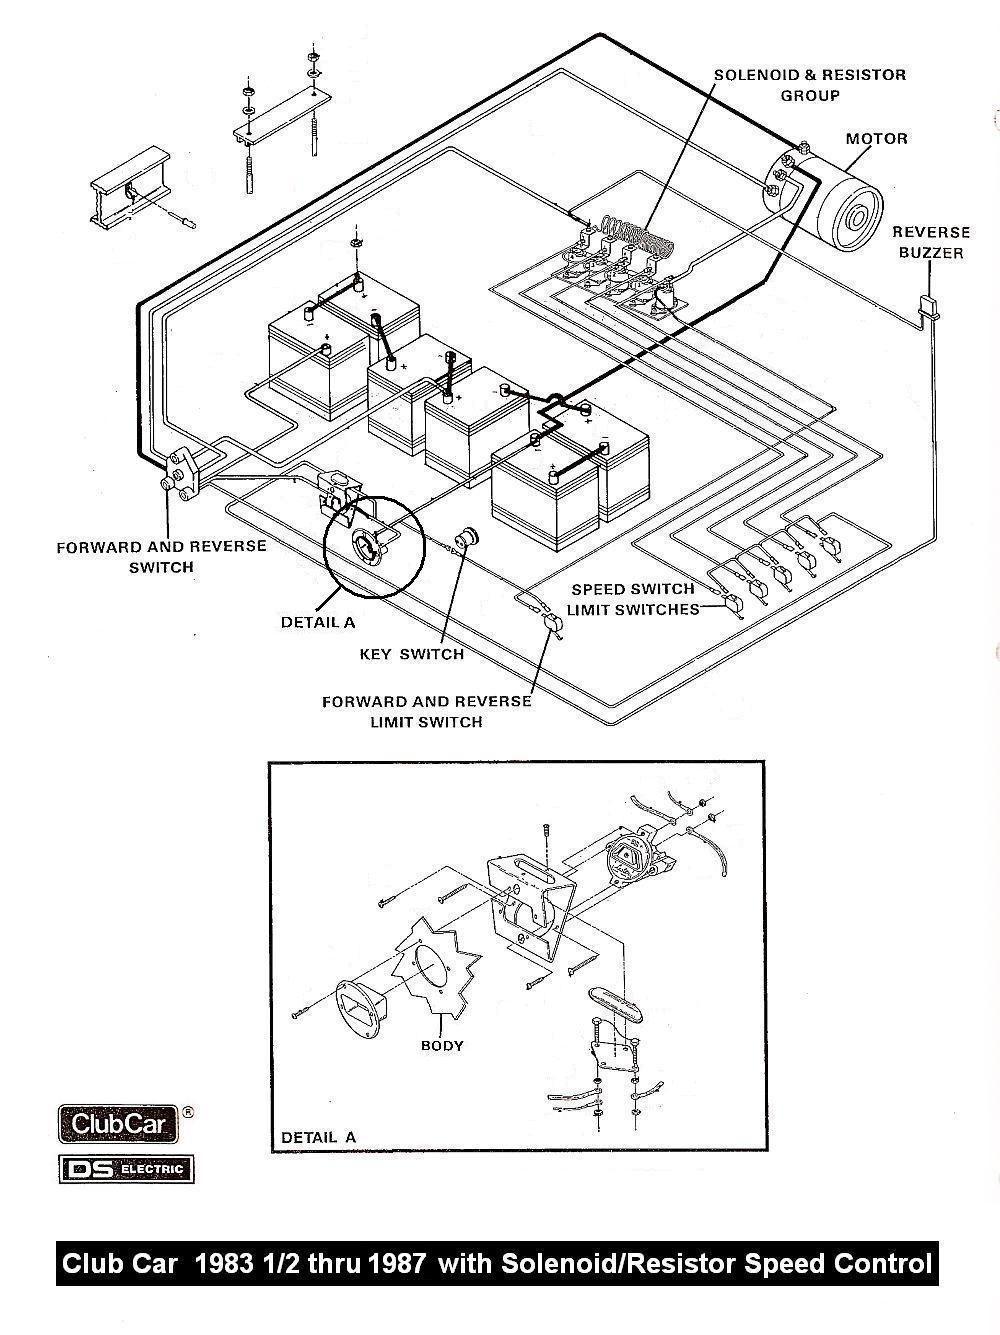 0e8d045370be7682b159825224221faa vintagegolfcartparts com *freezer & crock pot* pinterest Club Car 36V Wiring-Diagram at fashall.co